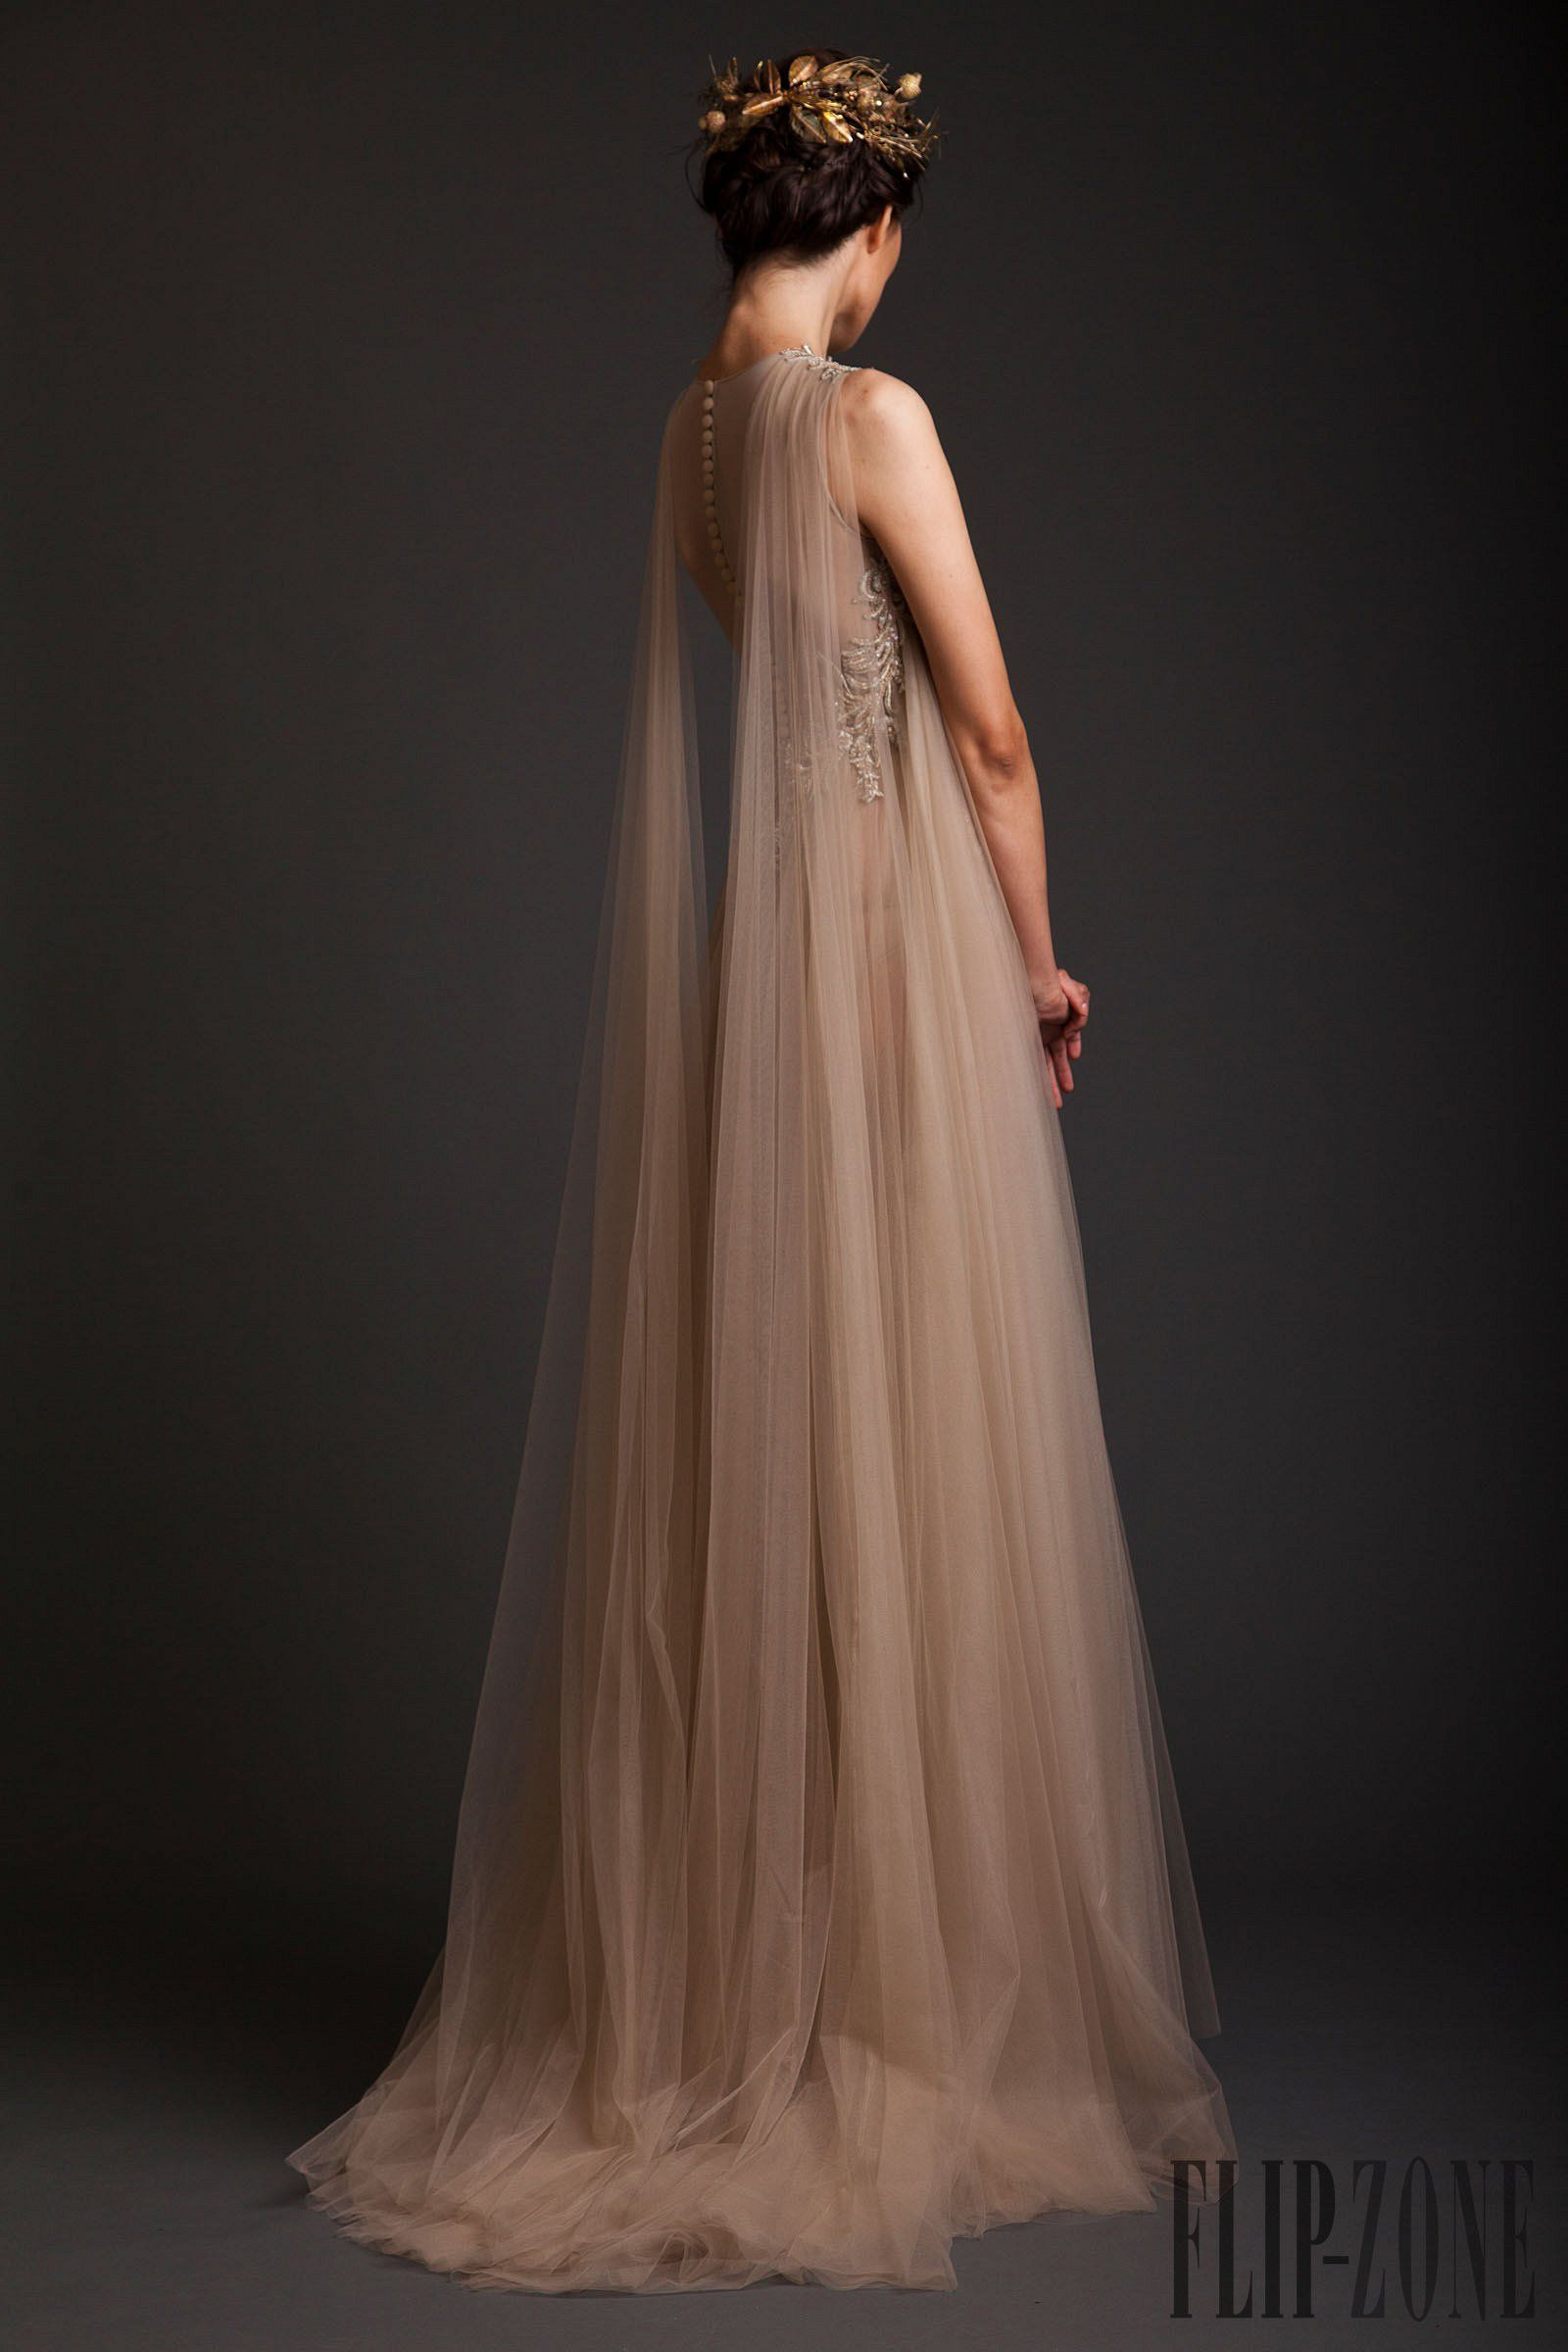 A Fresh Graduate Of L Ecole Superieure Des Arts Et Techniques De La Mode In Beirut Krikor Jabotian Began Working At Elie Saab S Creative Department